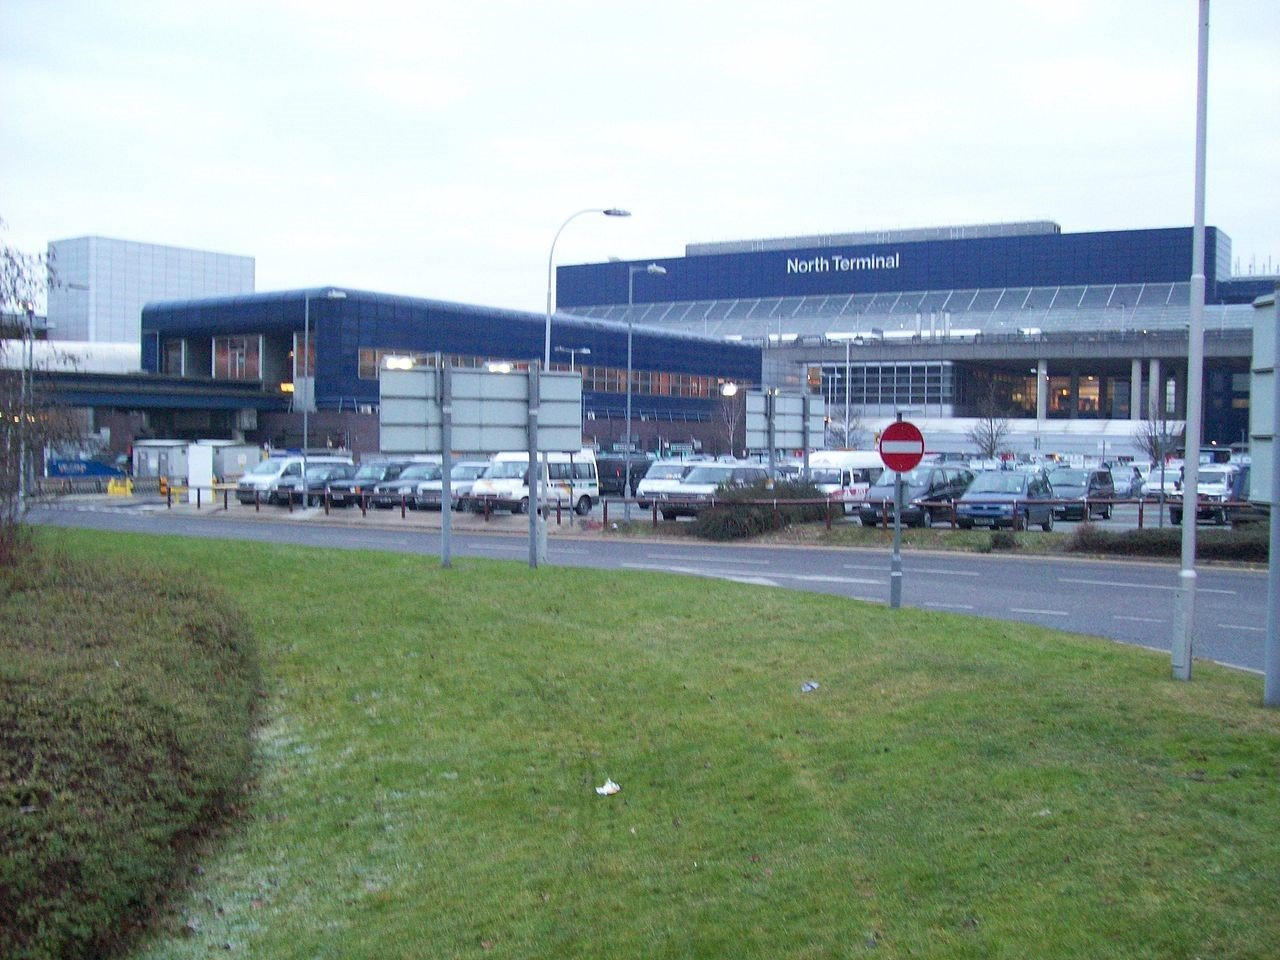 Hotel Durham Tees Valley Airport